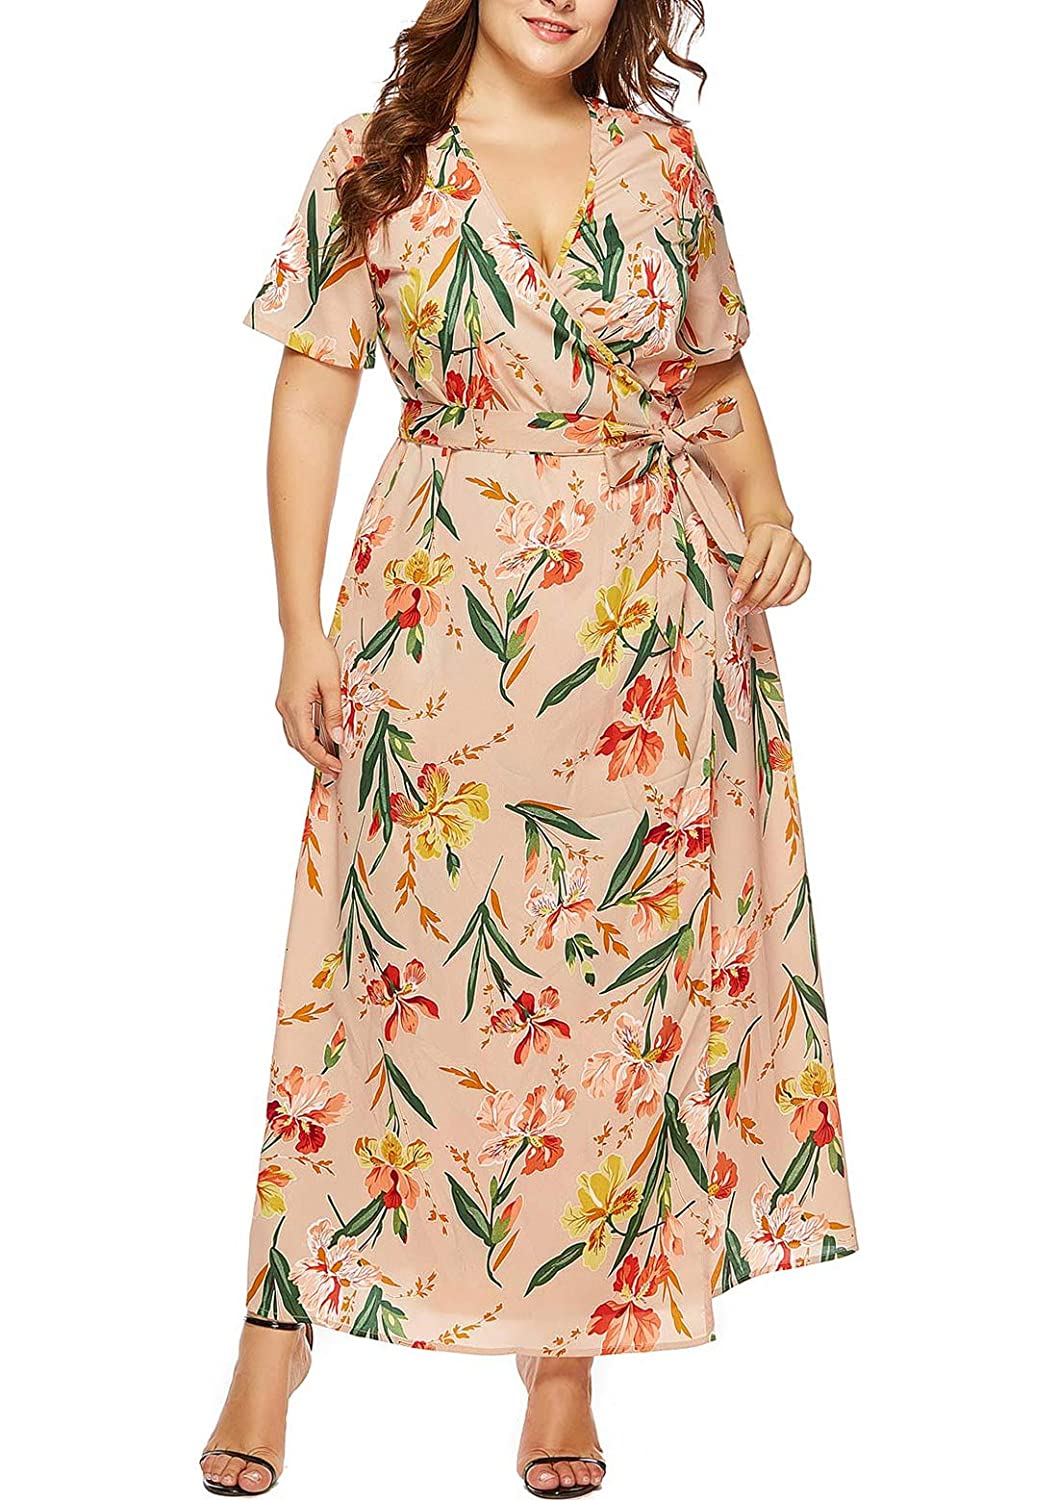 FEOYA Women\'s Plus Size Floral Wrap Dress Summer Casual V Neck Maxi ...